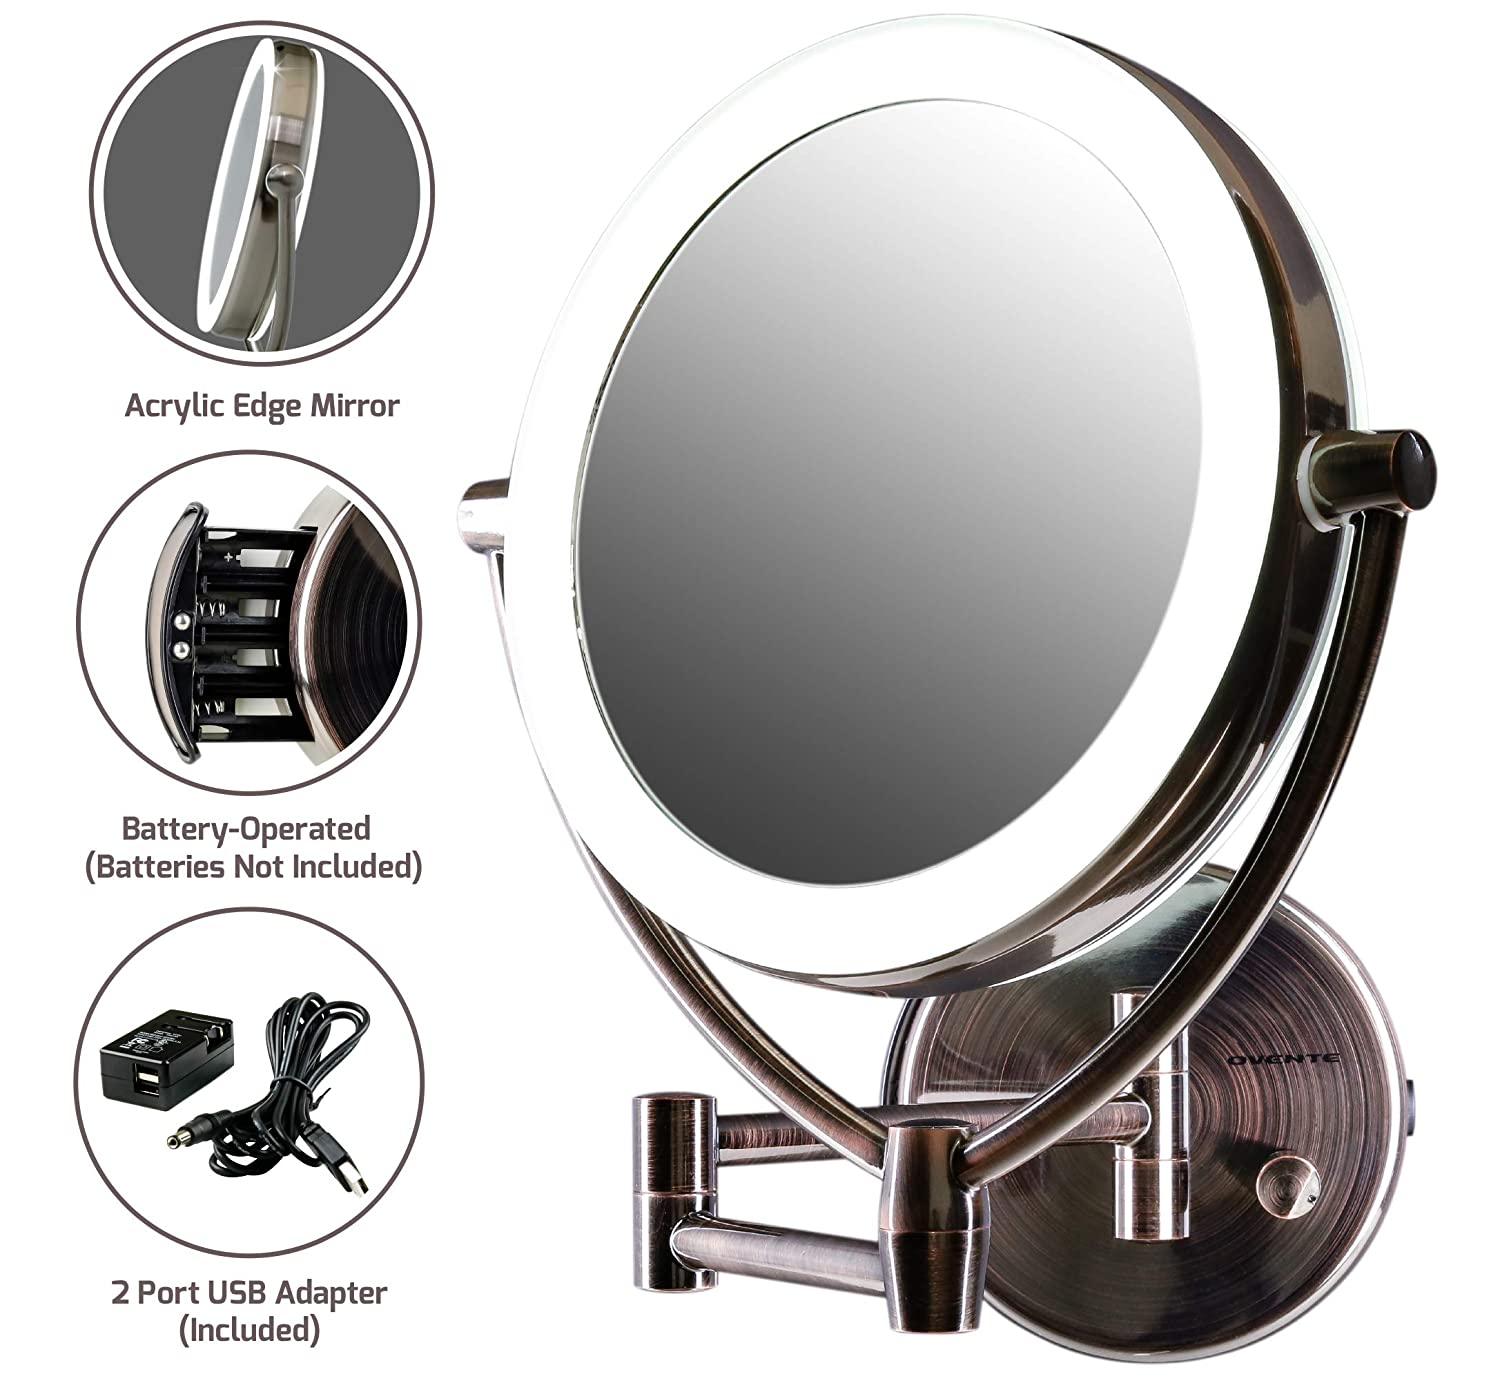 OVENTE LED Lighted Wall Mount Makeup Mirror, 7.5 Inch, Battery or USB Adapter Operated, 1x/10x Magnification